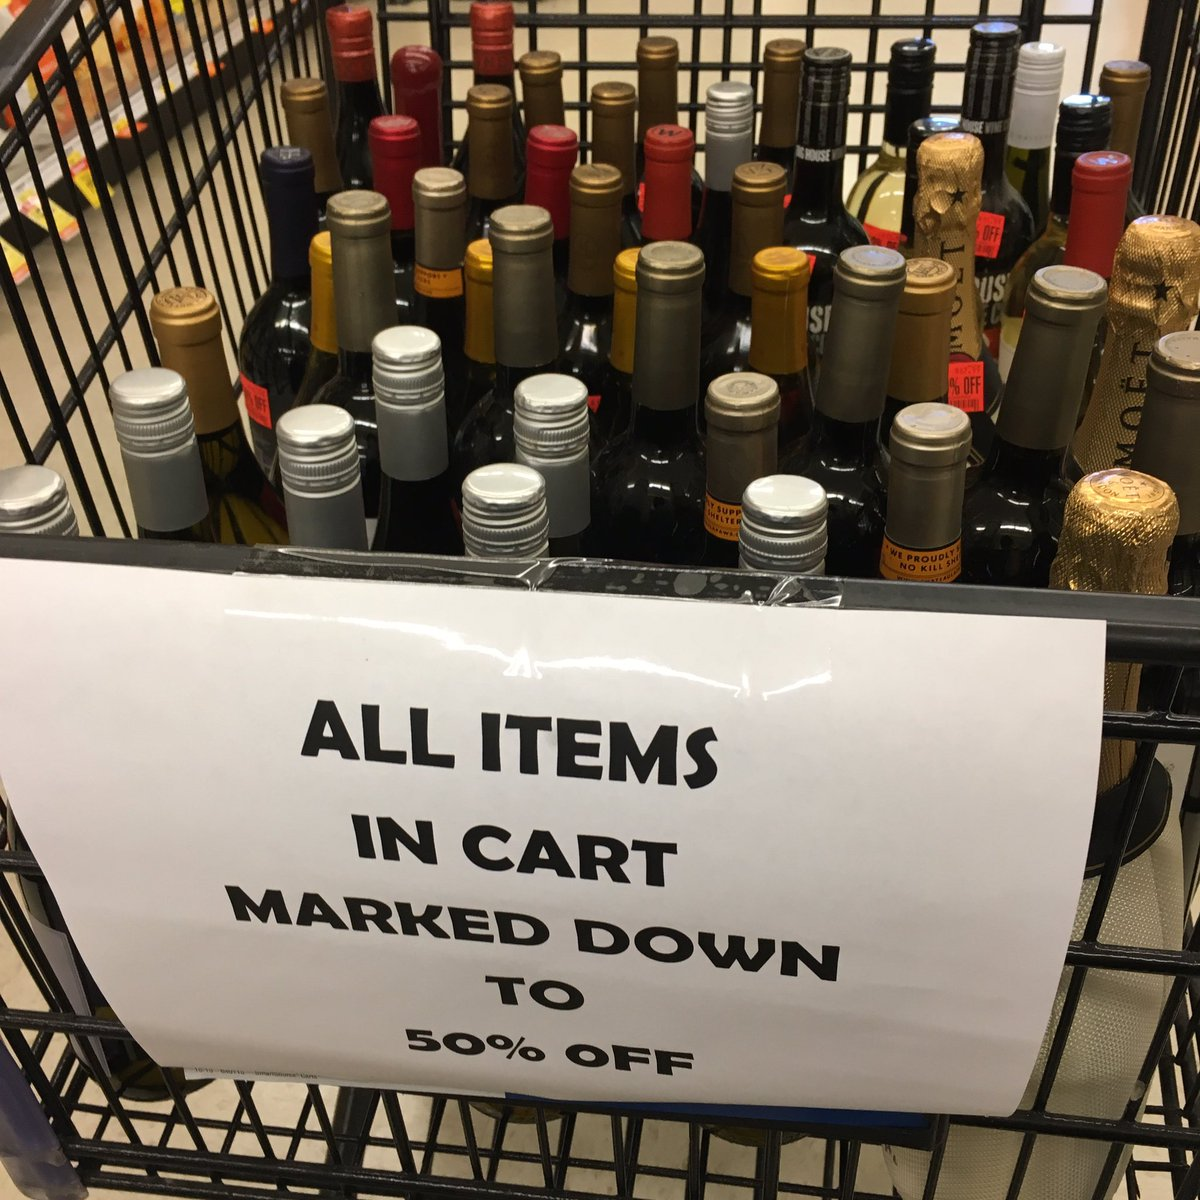 OMG, my local store totally gets me!!!  May your shopping cart always be full on #ThirstyThursday! #wine <br>http://pic.twitter.com/NKeoSkZmed